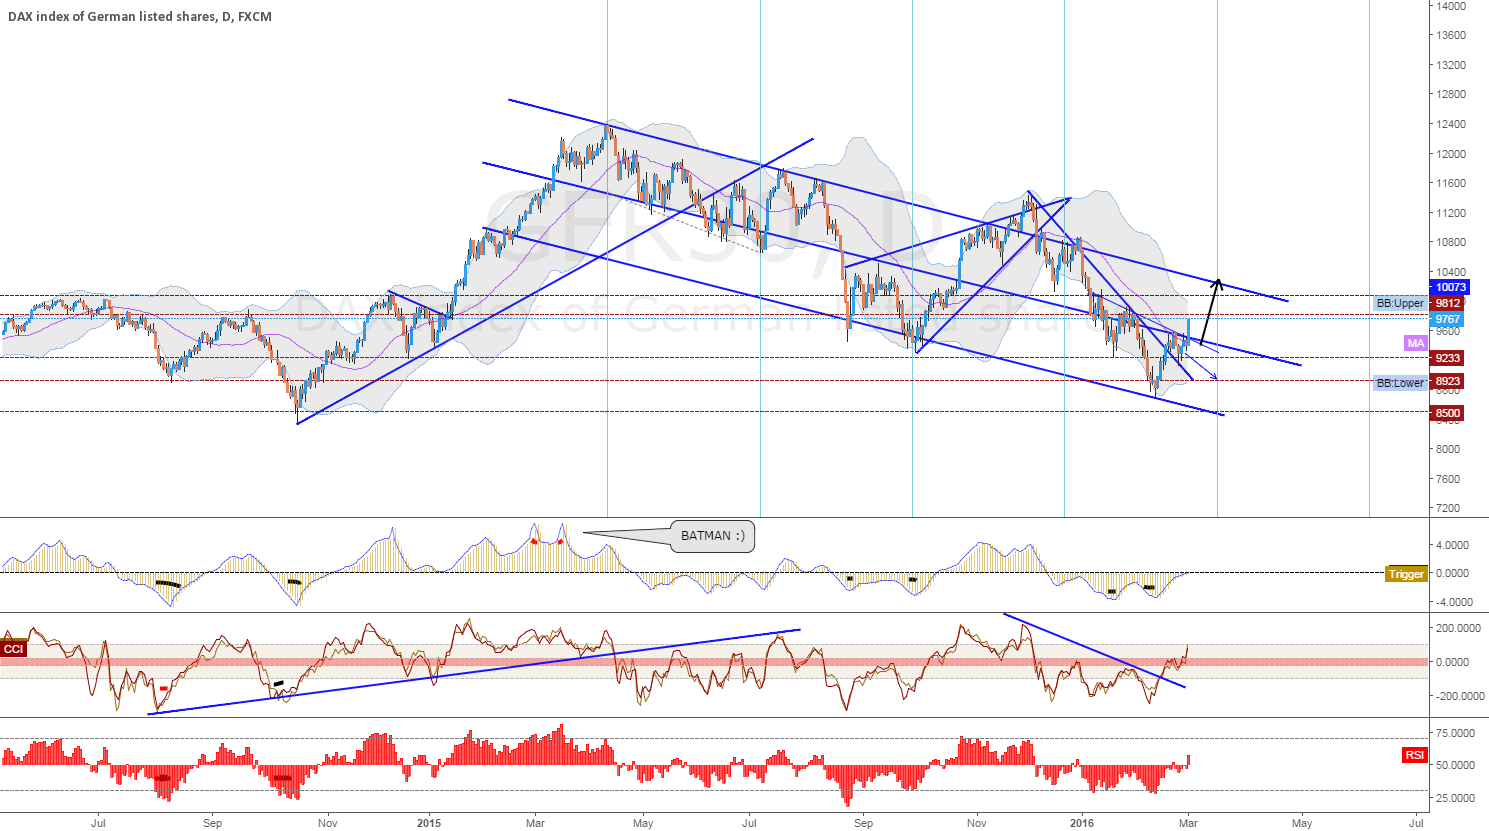 A Possibility on Daily - Dax/GER30